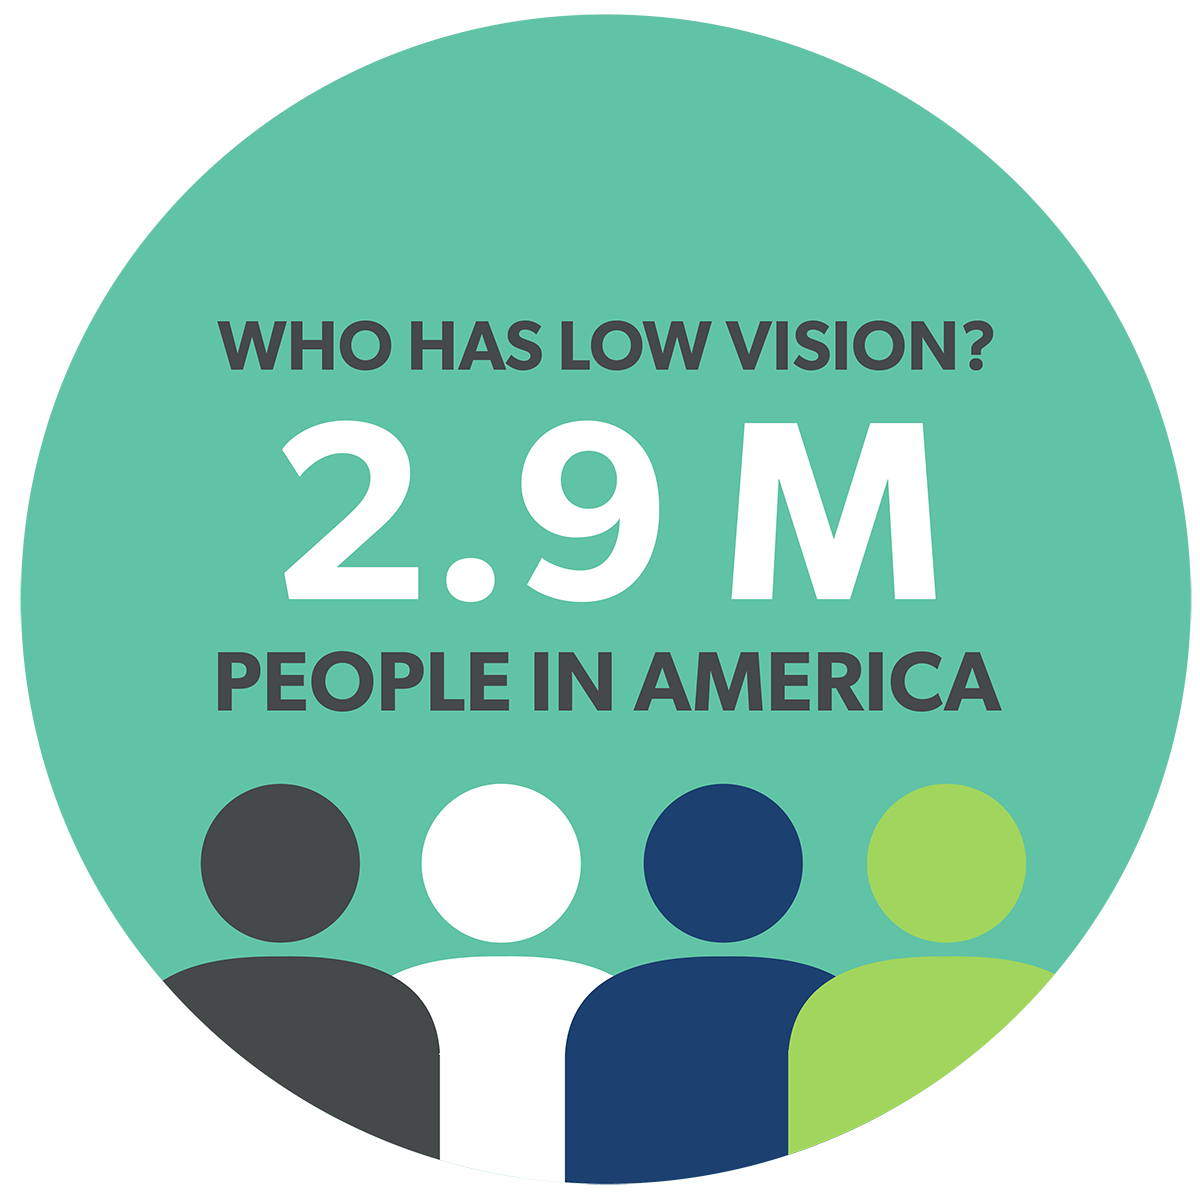 Who has low vision? 2.9 million people in America.